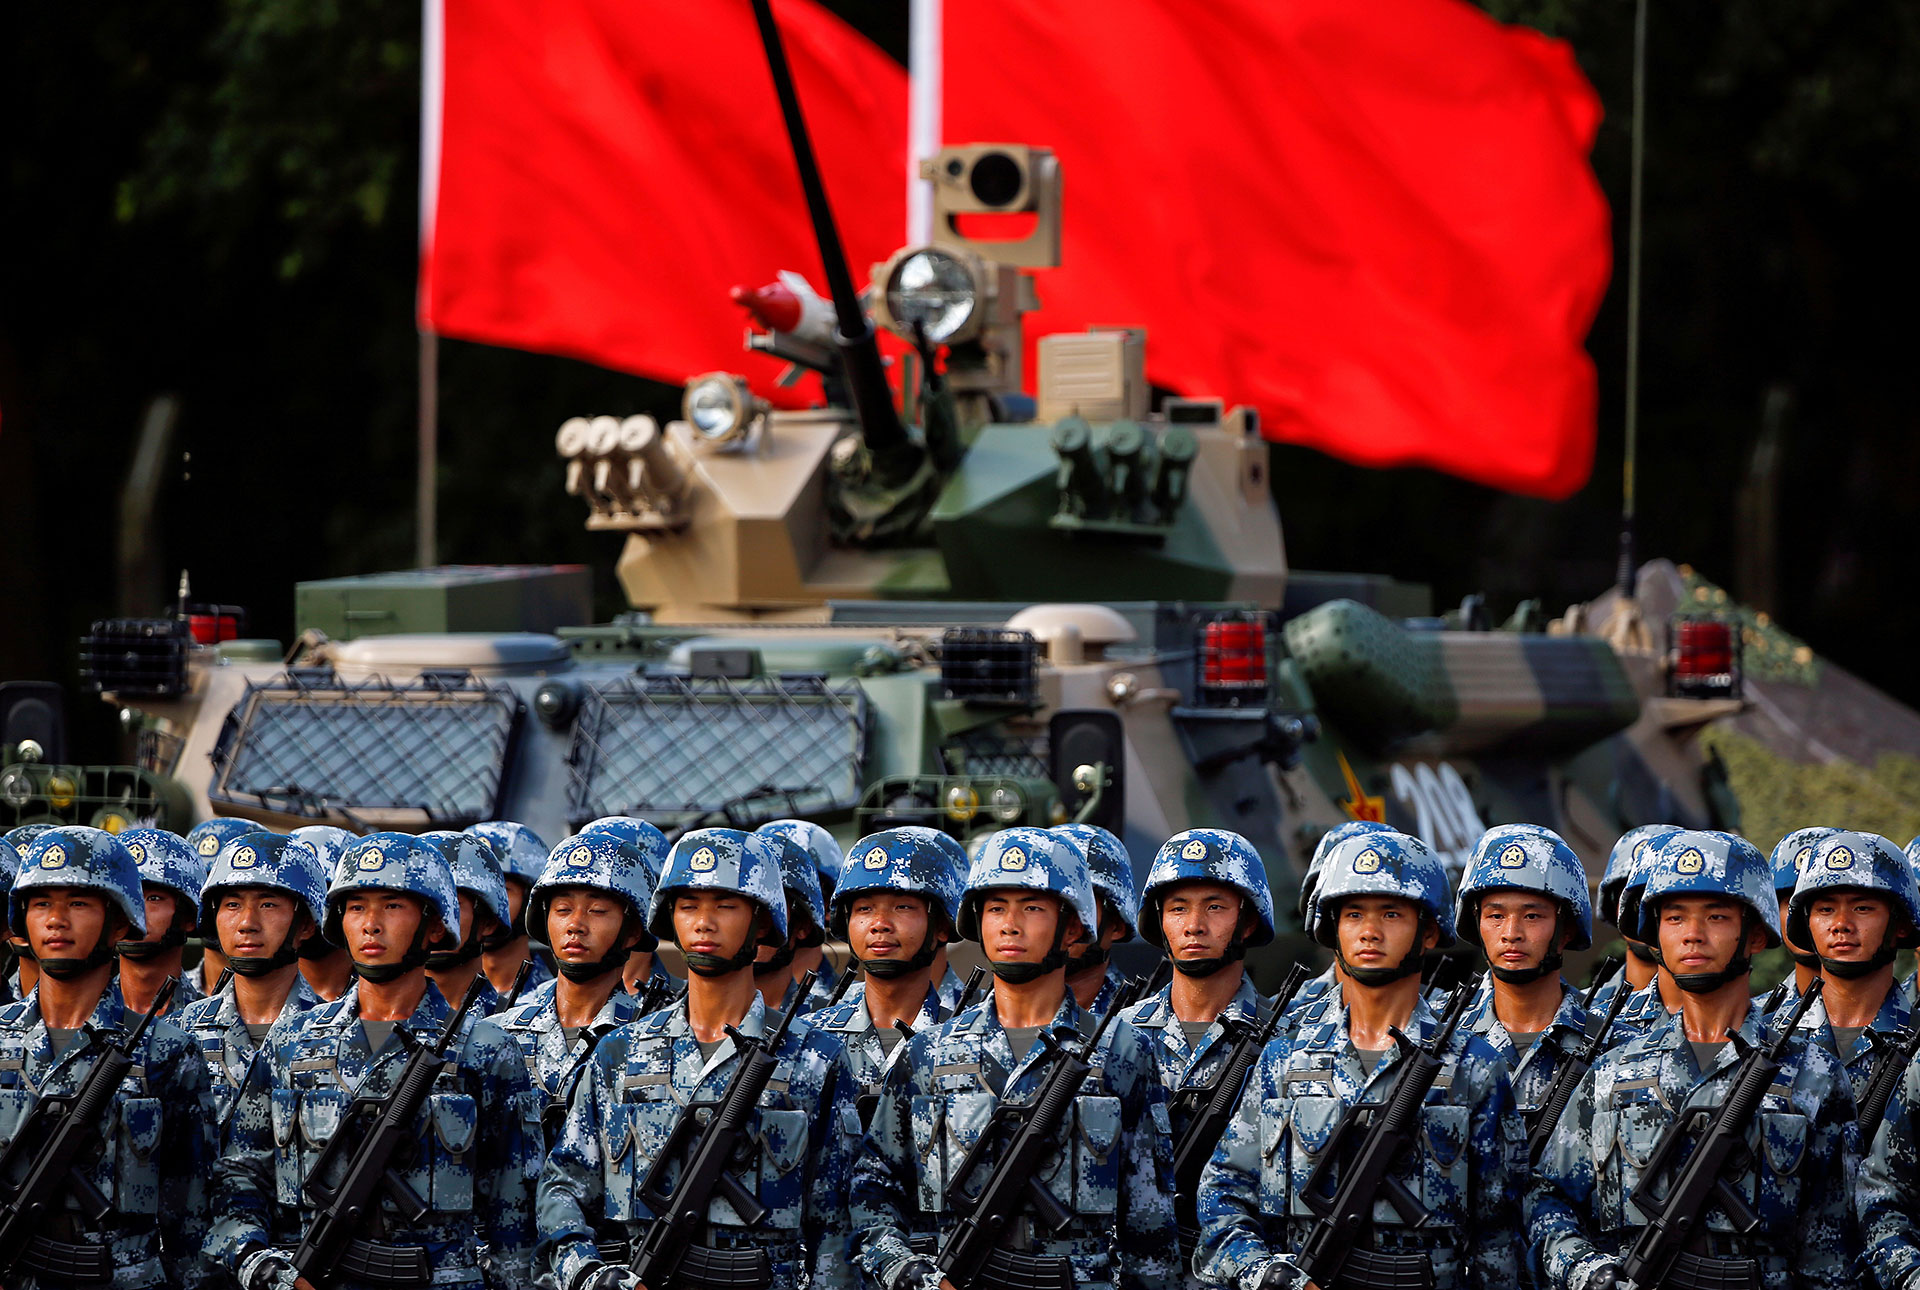 https://www.reuters.com/investigates/special-report/assets/china-army-xi/27.jpg